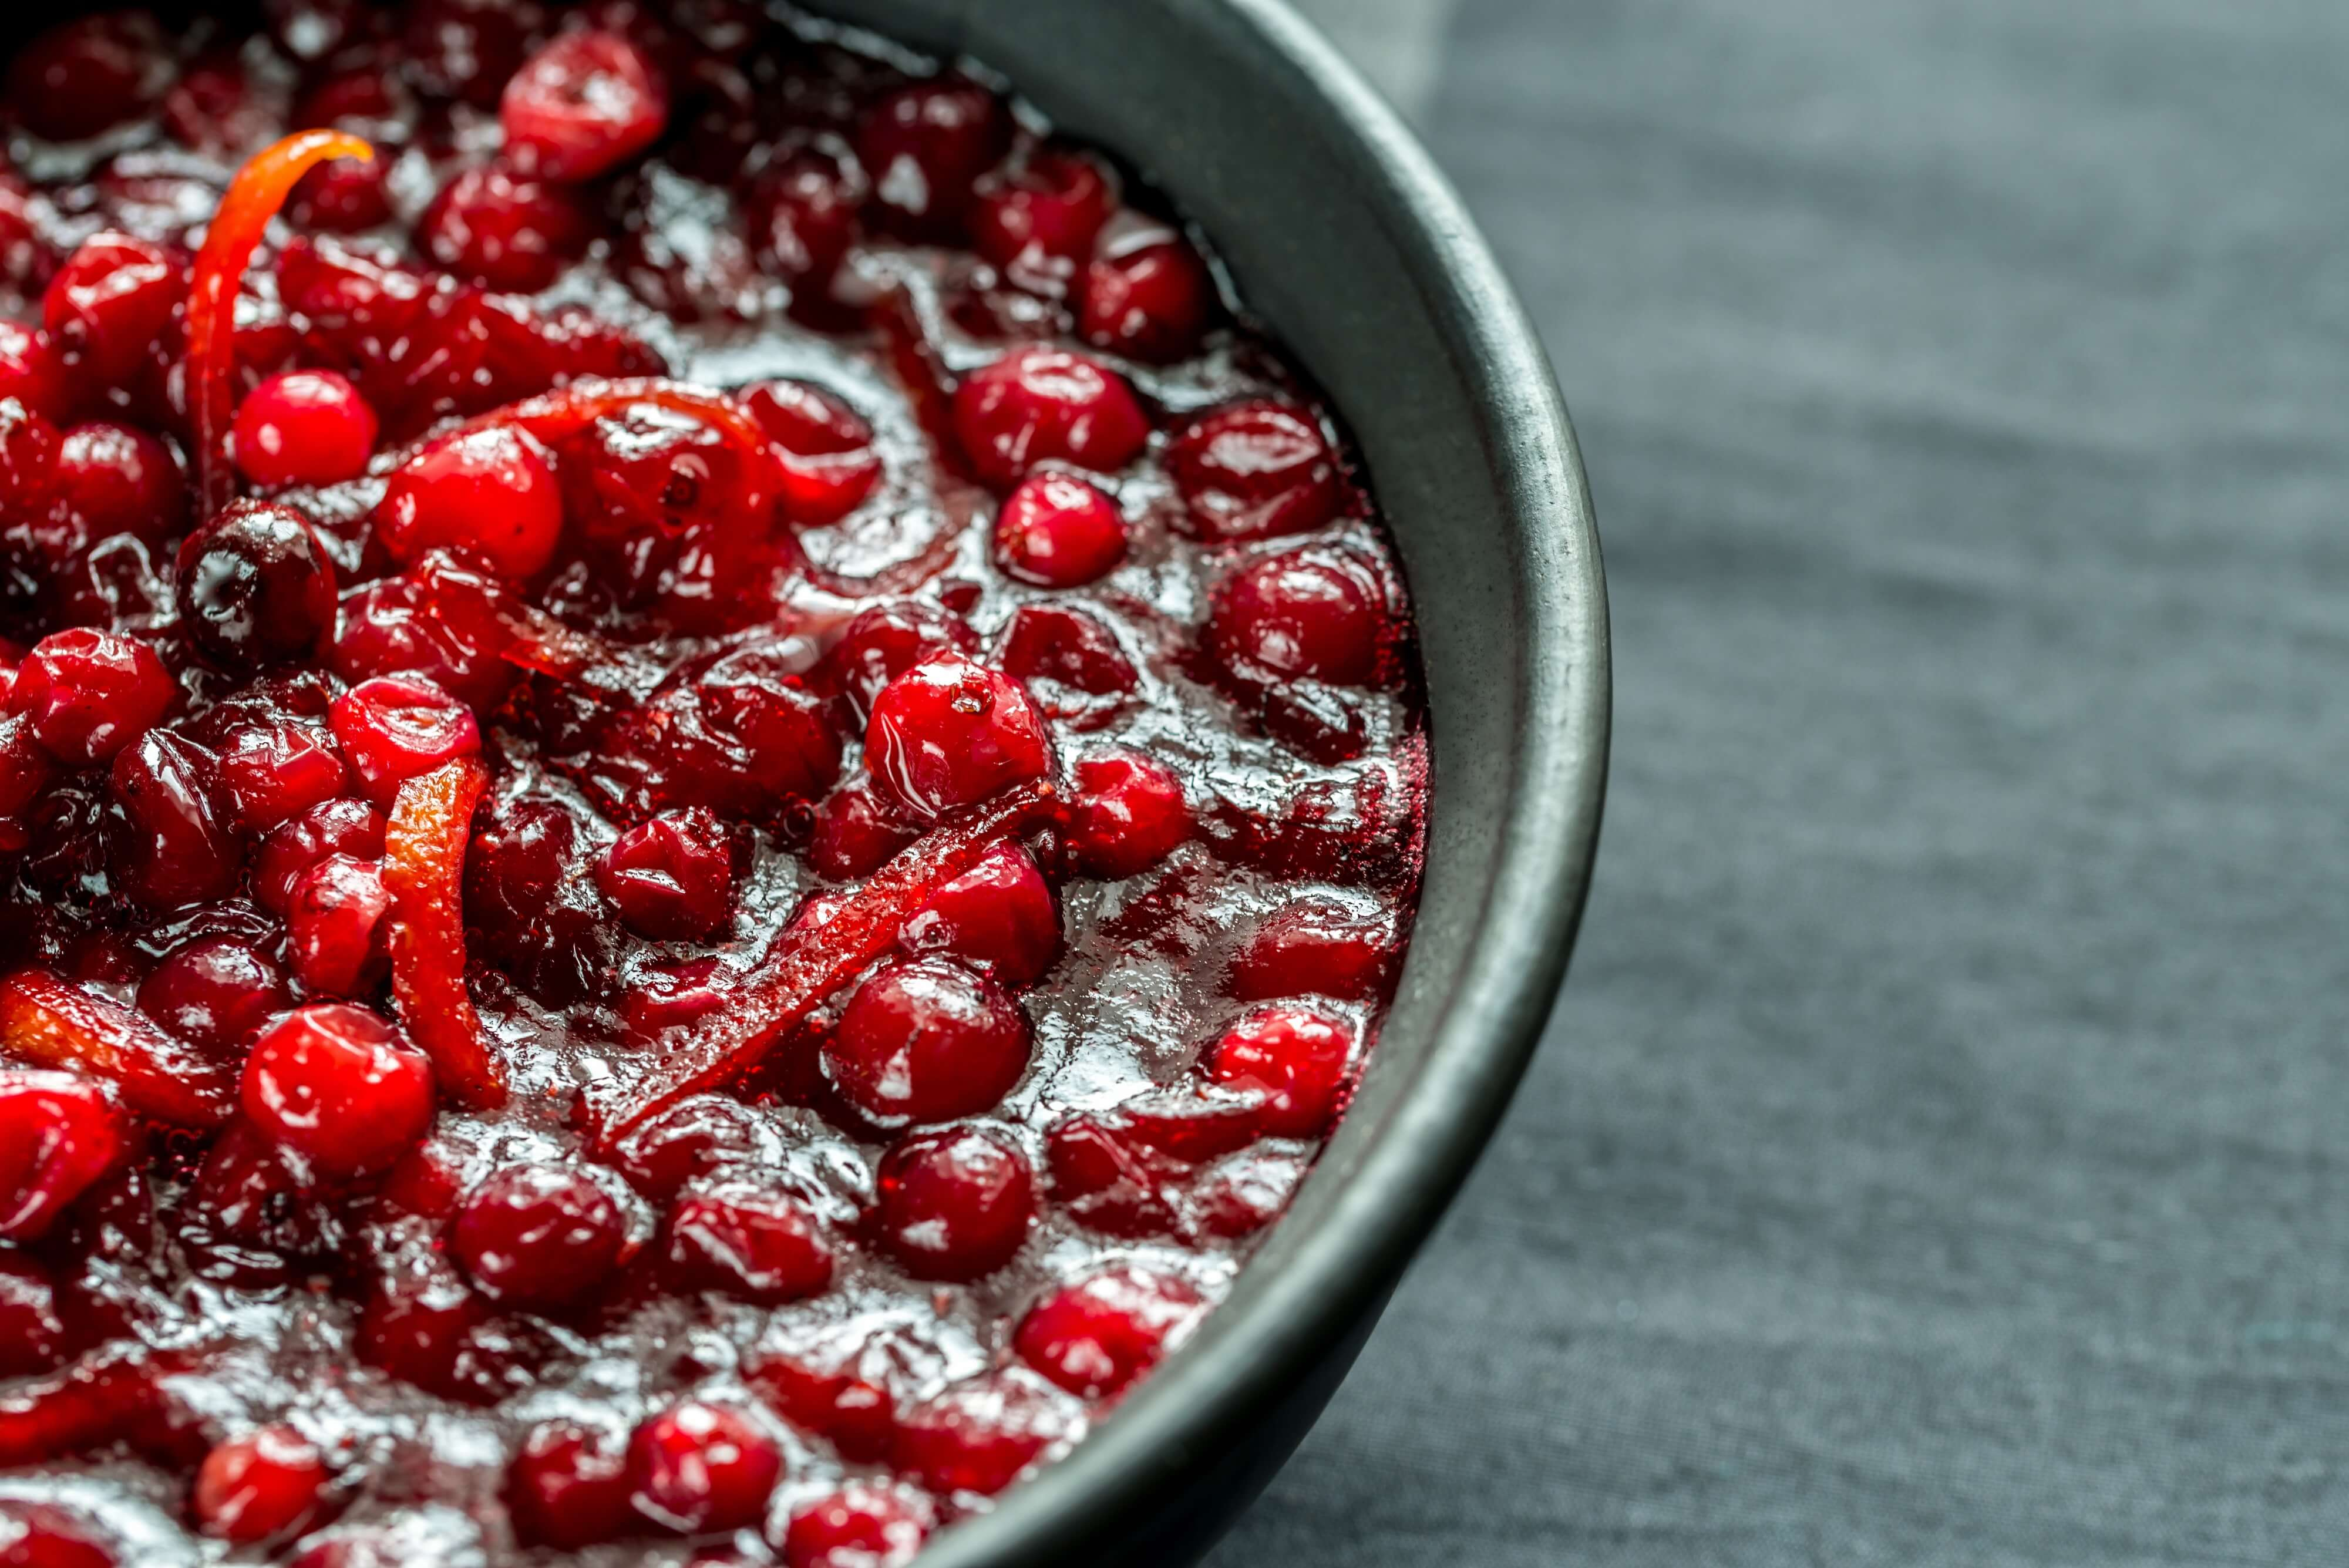 A bowl of Cranberry Chutney placed on a dinner table.